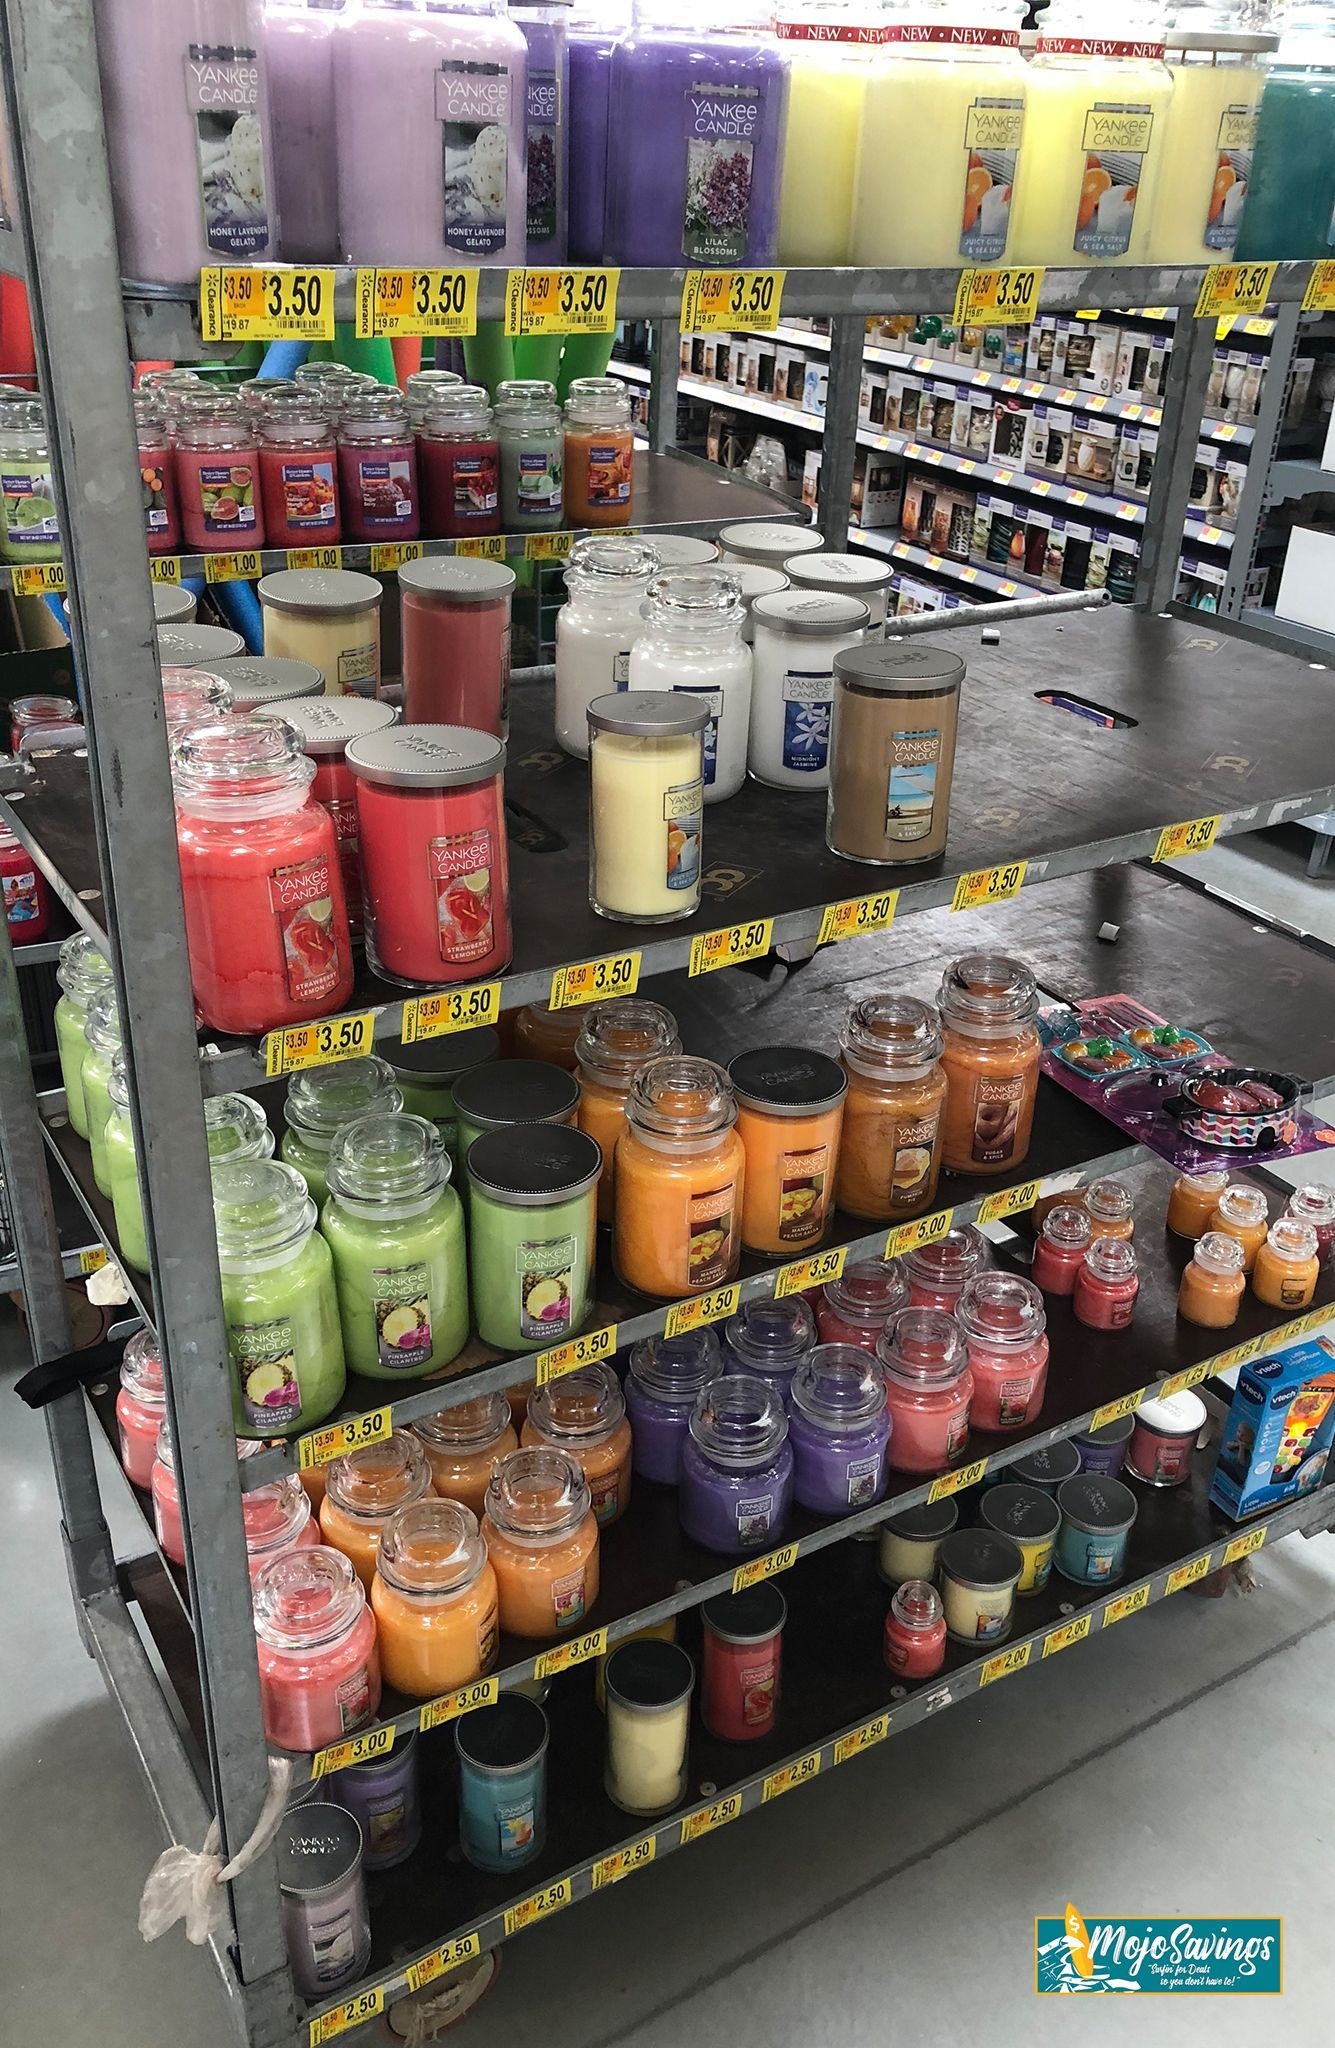 Candle Clearance Sale As Low As 1.00 Walmart